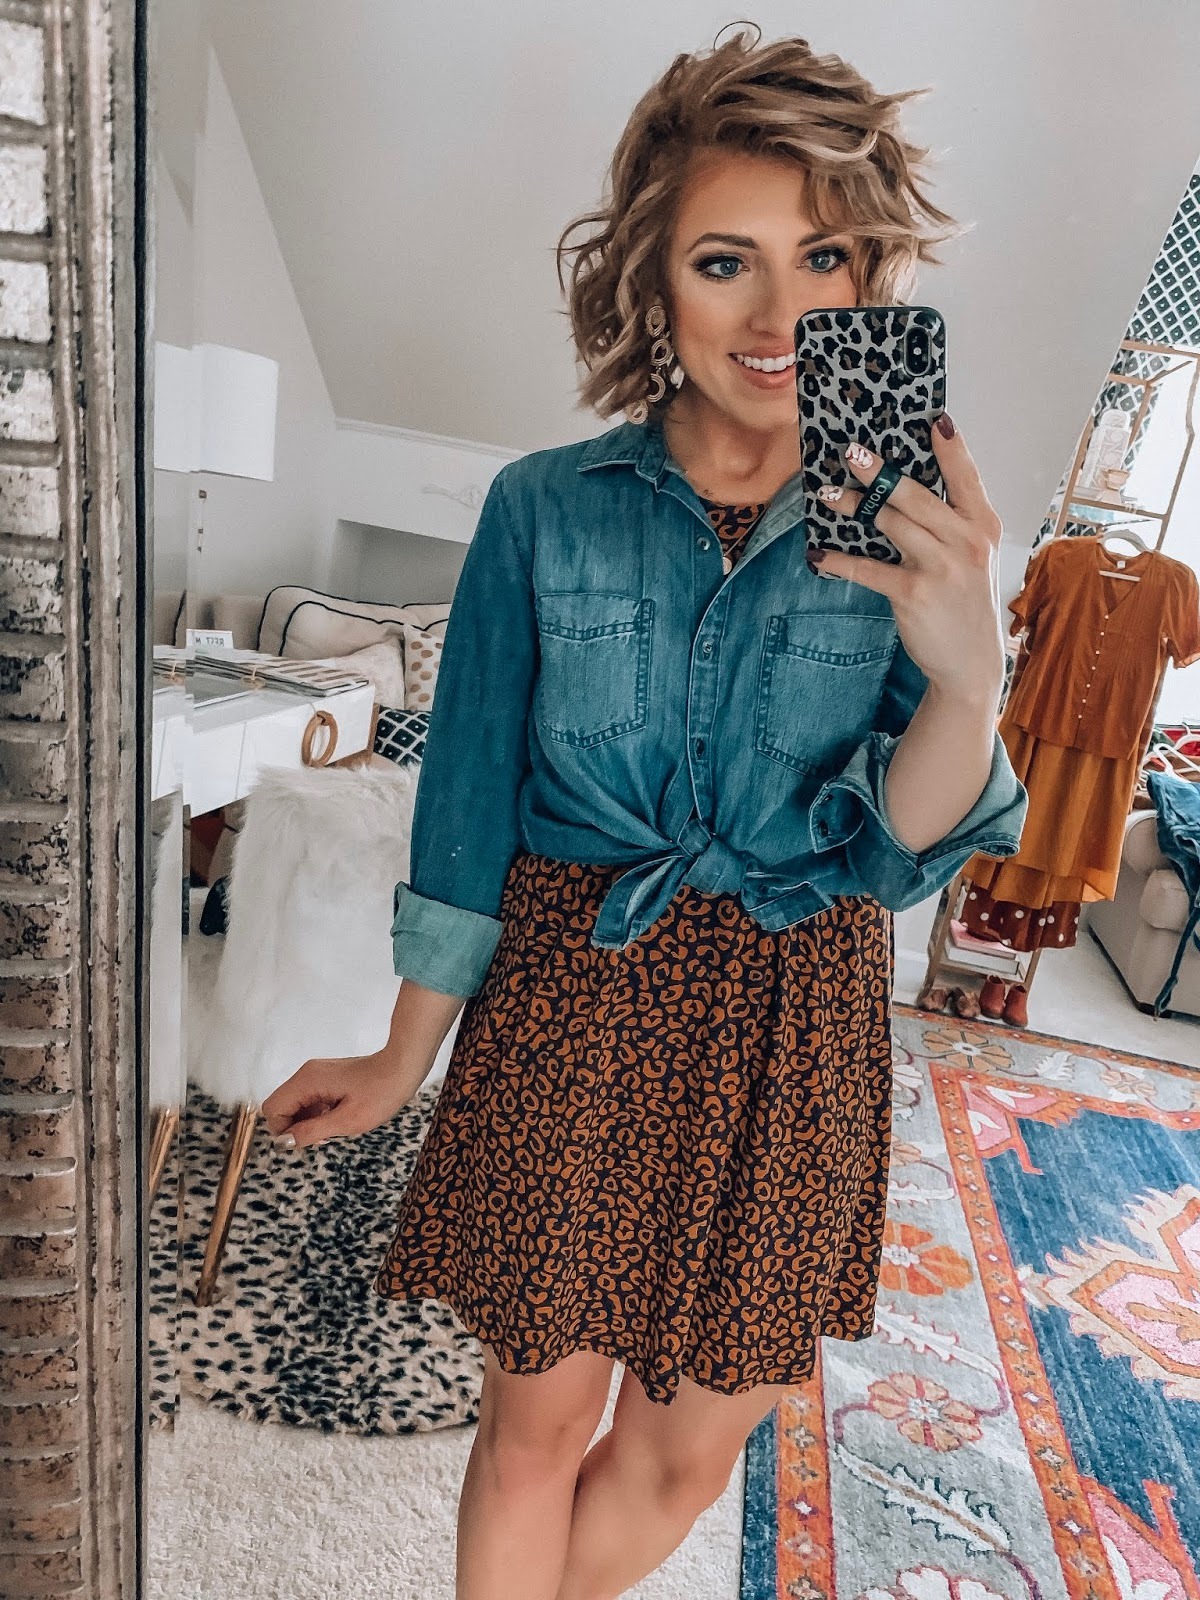 Old Navy Leopard Dress + Chambray Top Tied at Waist - Something Delightful Blog #affordablefashion